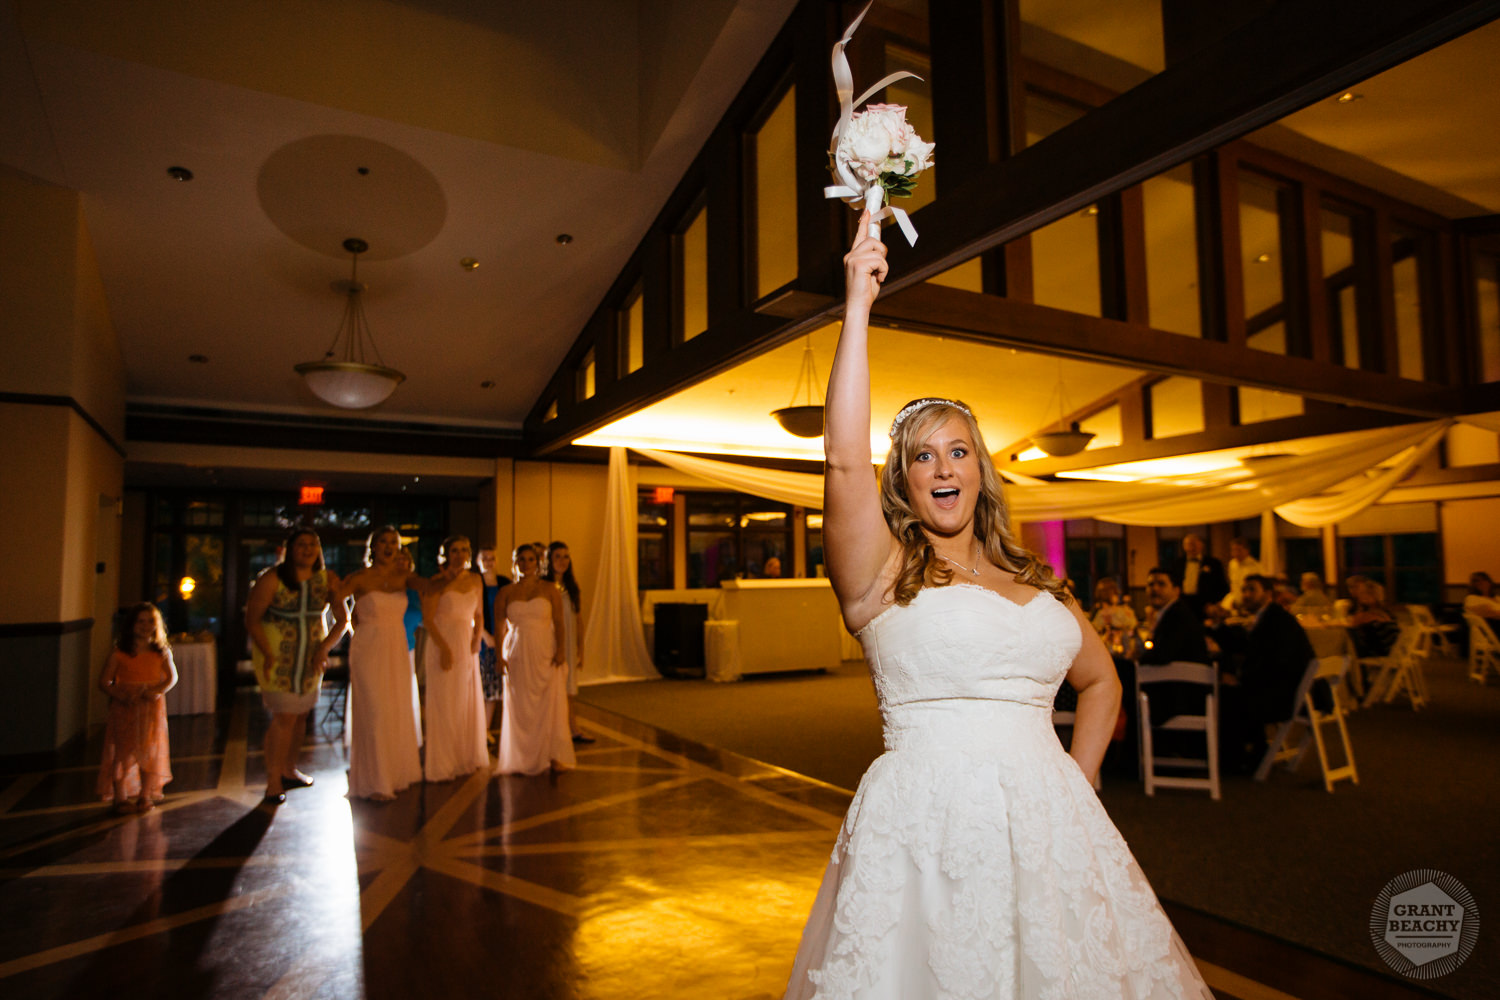 Grant Beachy wedding photography southbend goshen chicago-50.jpg